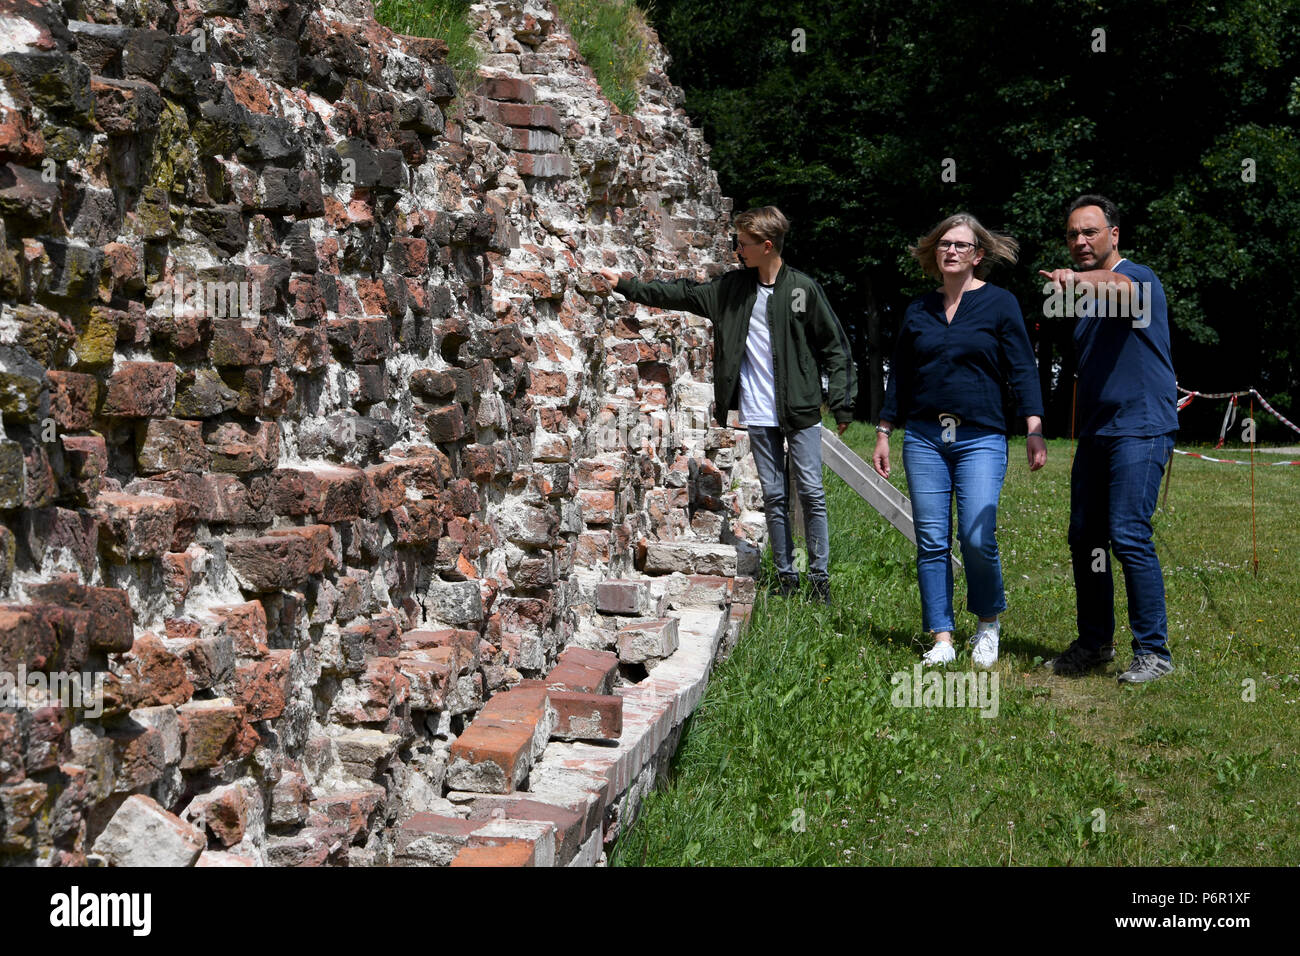 20.06.2018, Schleswig-Holstein, Danewerk: Visitors stand at the Waldemarmauer of the Viking village Danewerk. It originally consisted of earth walls, walls, ditch and a barrage in the loop. The UNESCO World Heritage Kowithee will decide on the inclusion of new monuments in the World Heritage List at its meeting in Bahrain from 24 June to 3 July. From Germany are Viking-time Statten in Danewerk and Haithabu in Schleswig here. (to dpa 'Wikingestatten as a World Heritage:' Then we play World League ') Photo: Carsten Rehder/dpa | usage worldwide - Stock Image